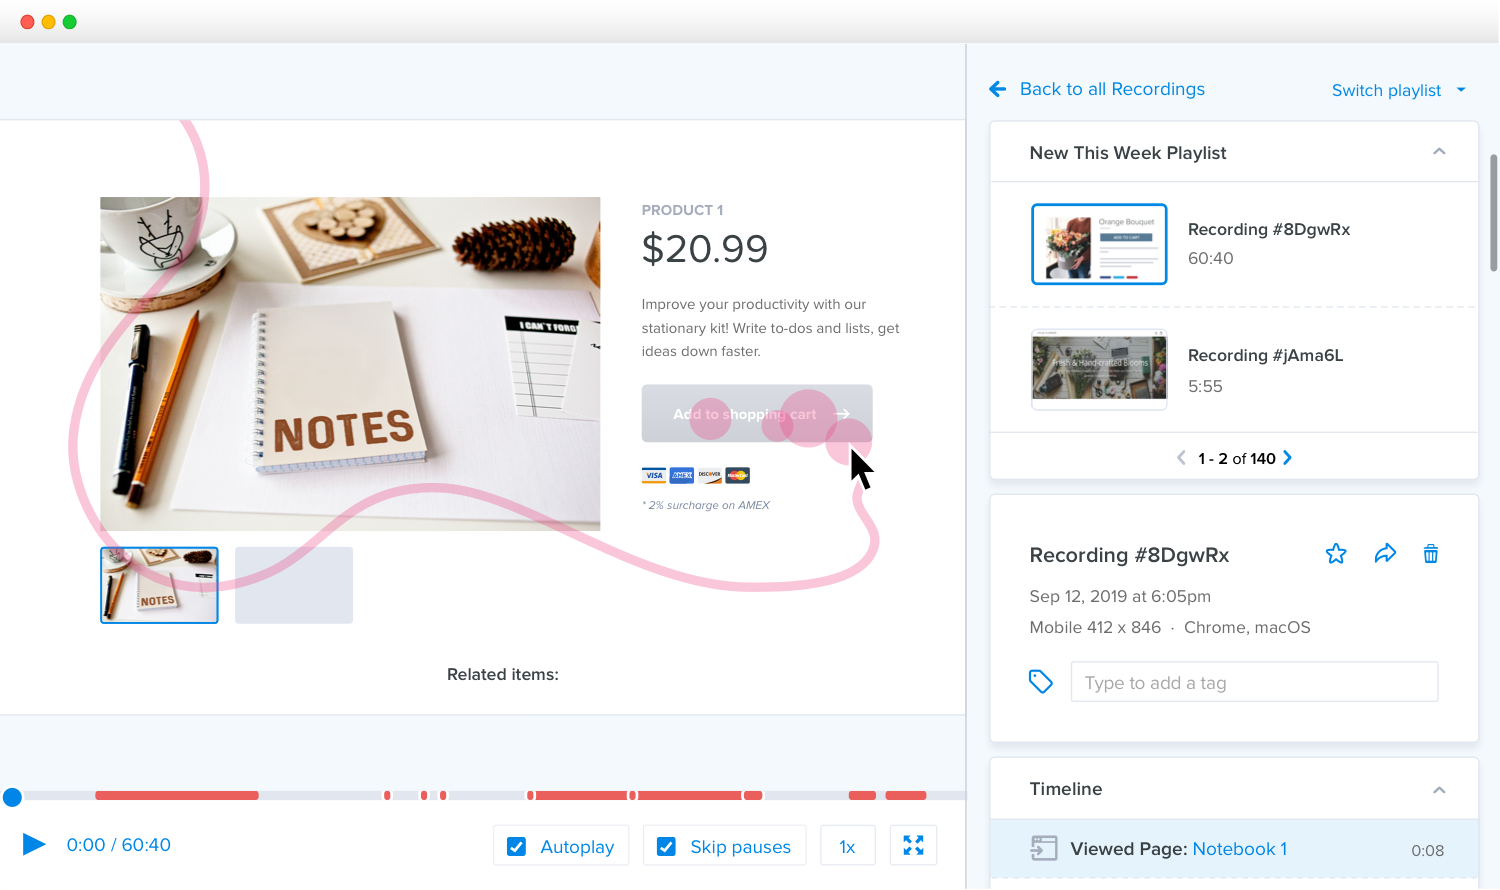 The Best 18 Online Marketing Tools for Small Businesses 14